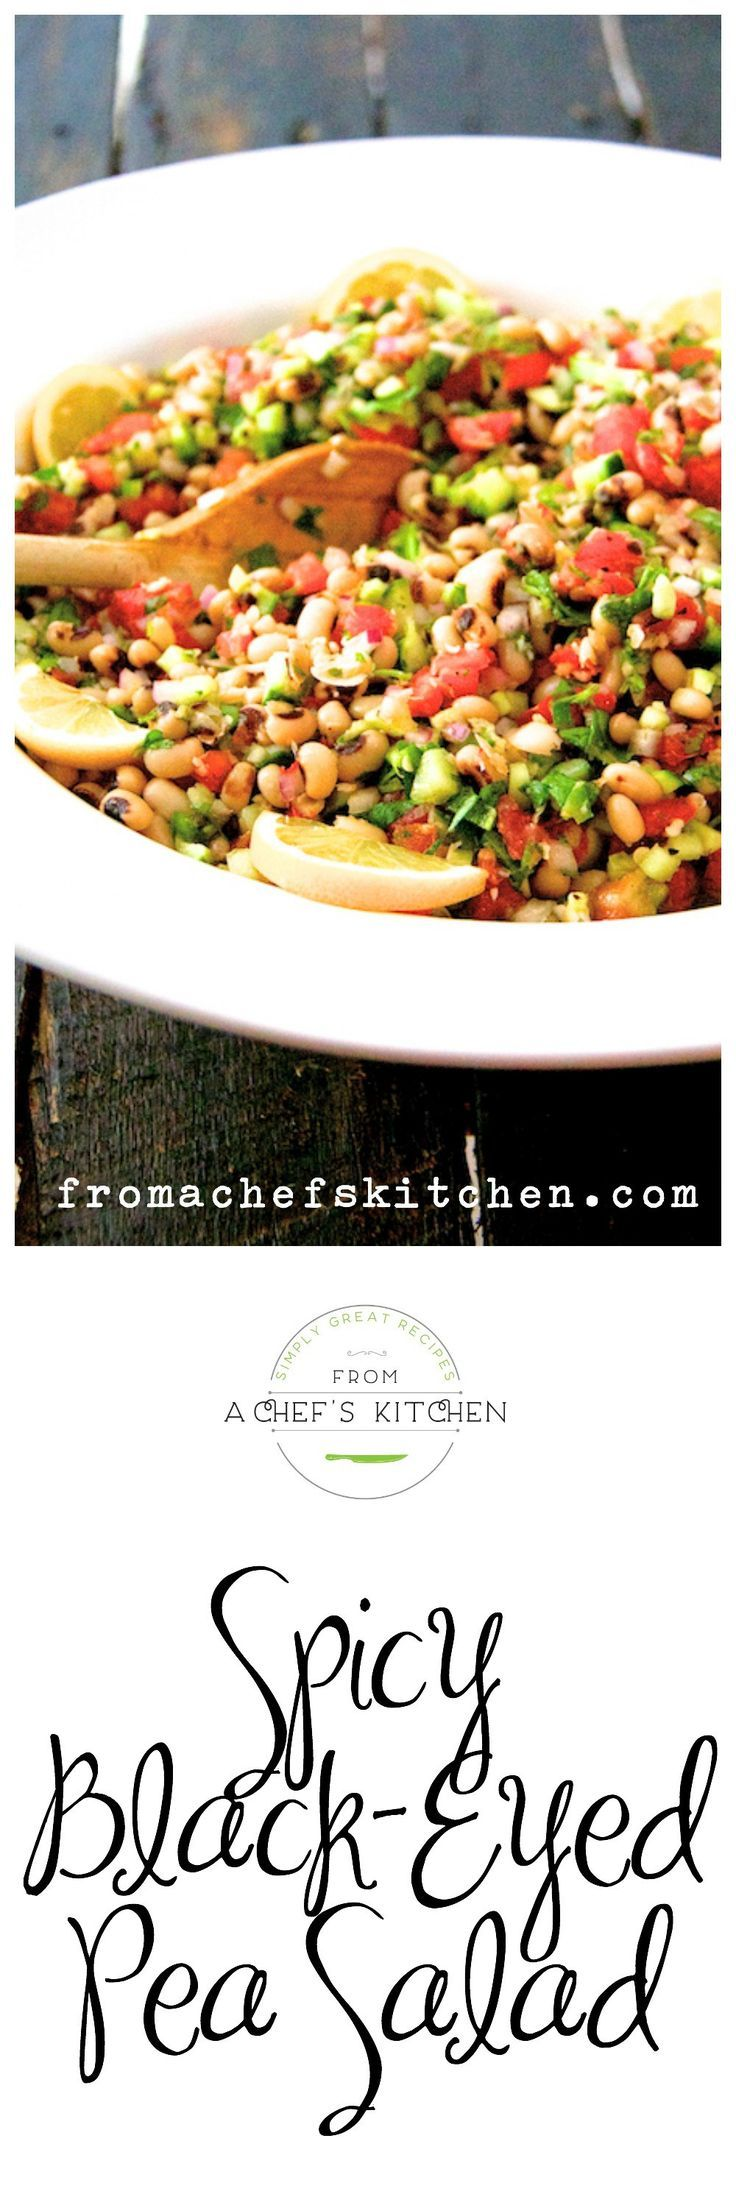 Spicy Black-Eyed Pea Salad - More than a New Year's good luck charm, black-eyed…